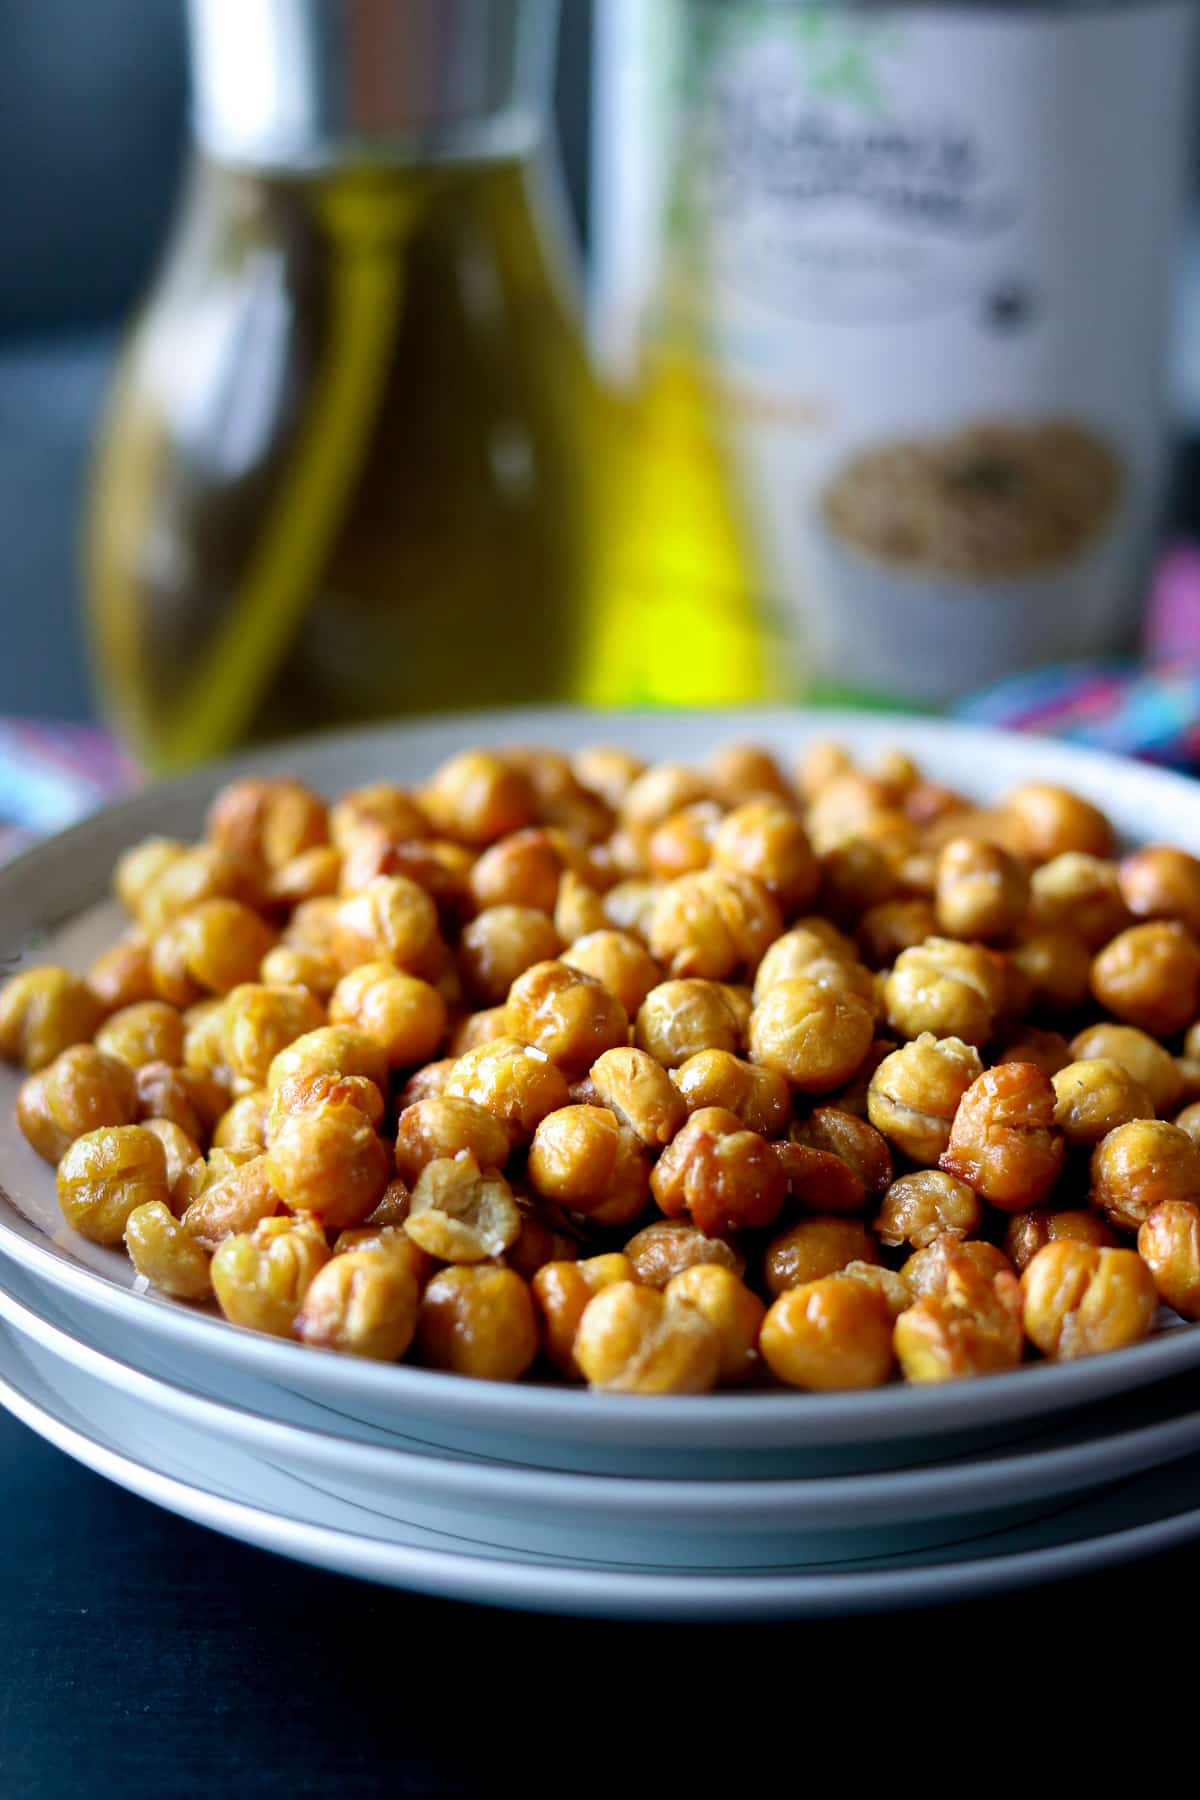 Roasted chickpeas on a stack of white plate